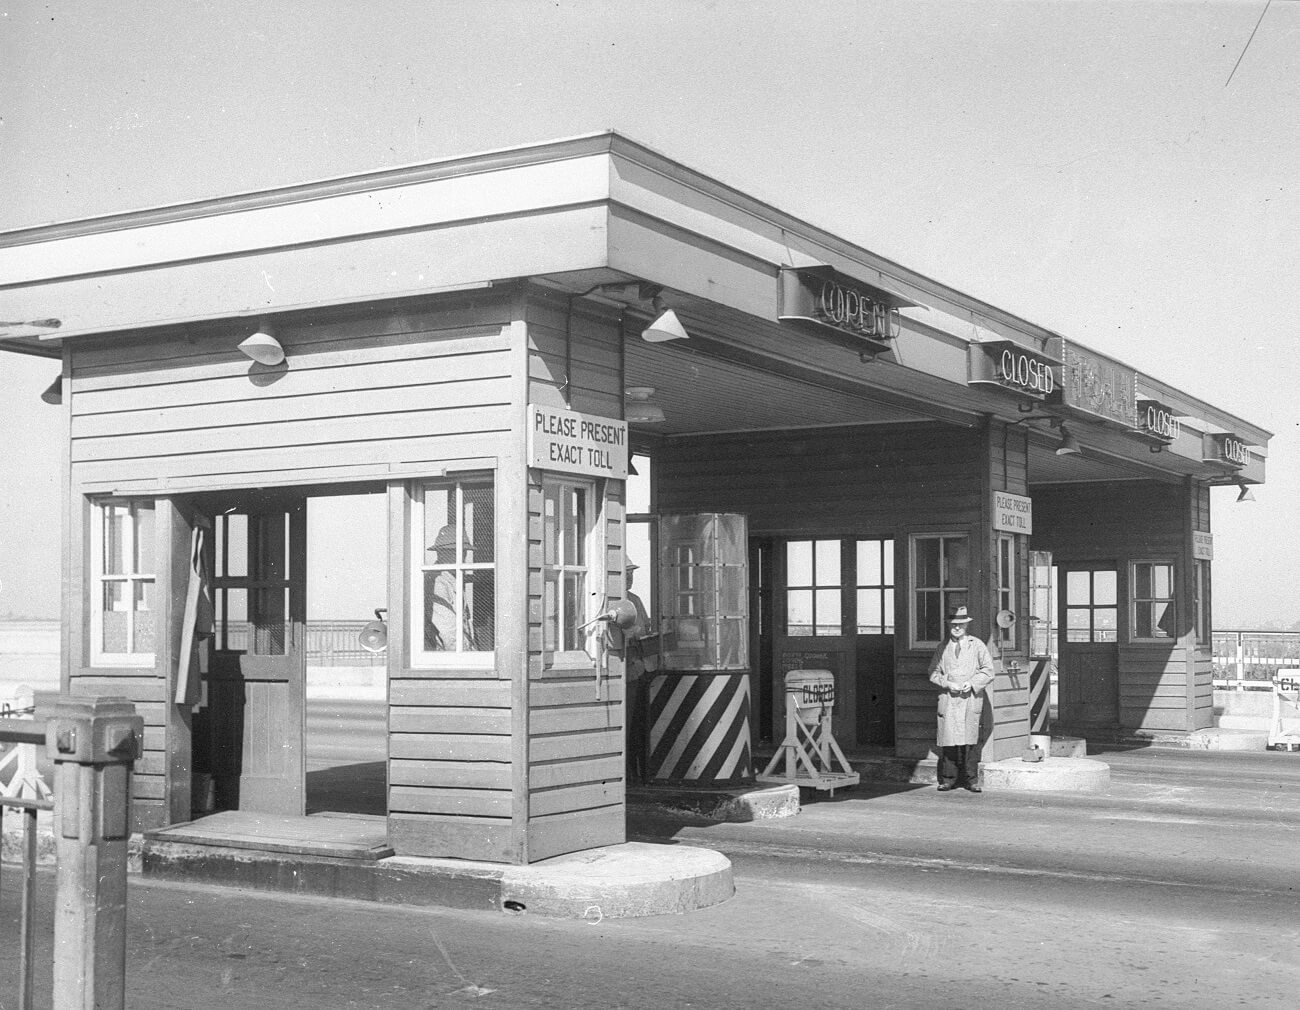 Sydney Harbour Bridge toll gates, photograph by Hall and Co, 1933, Home and Away – 35255